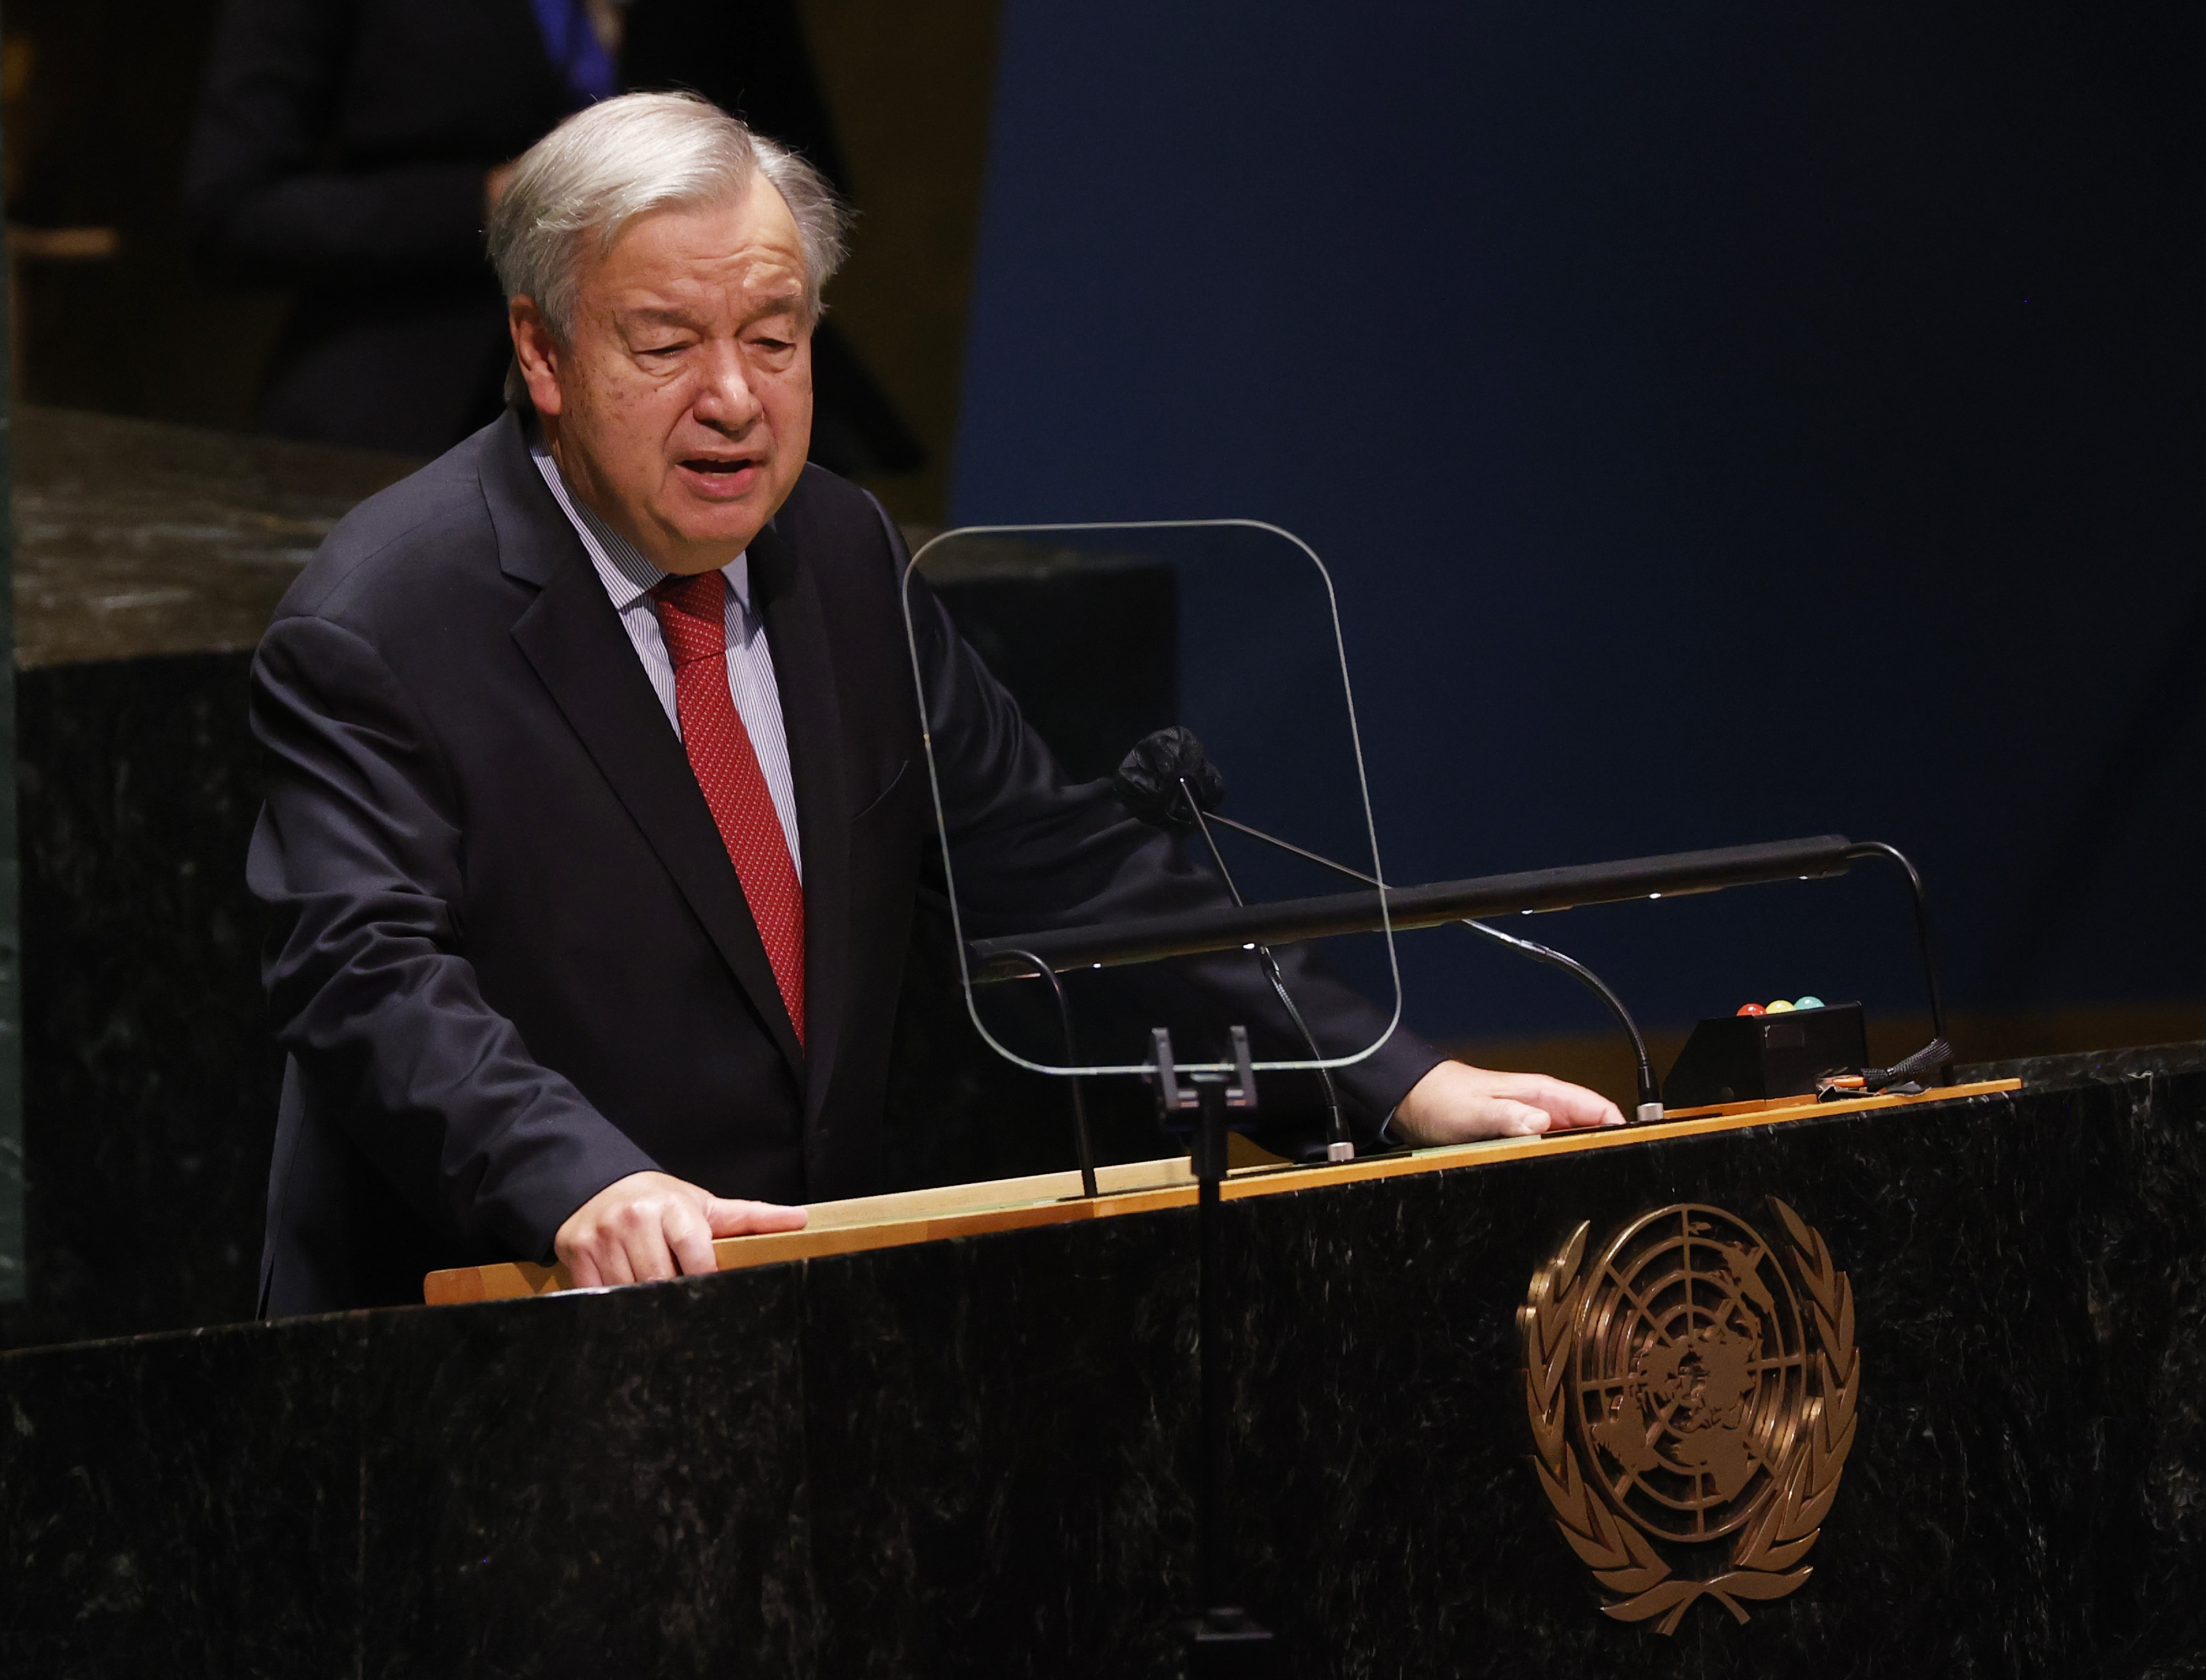 United Nations Secretary-General Antonio Guterres speaks at the United Nations headquarters in New York, on Wednesday, Sept. 22, 2021.